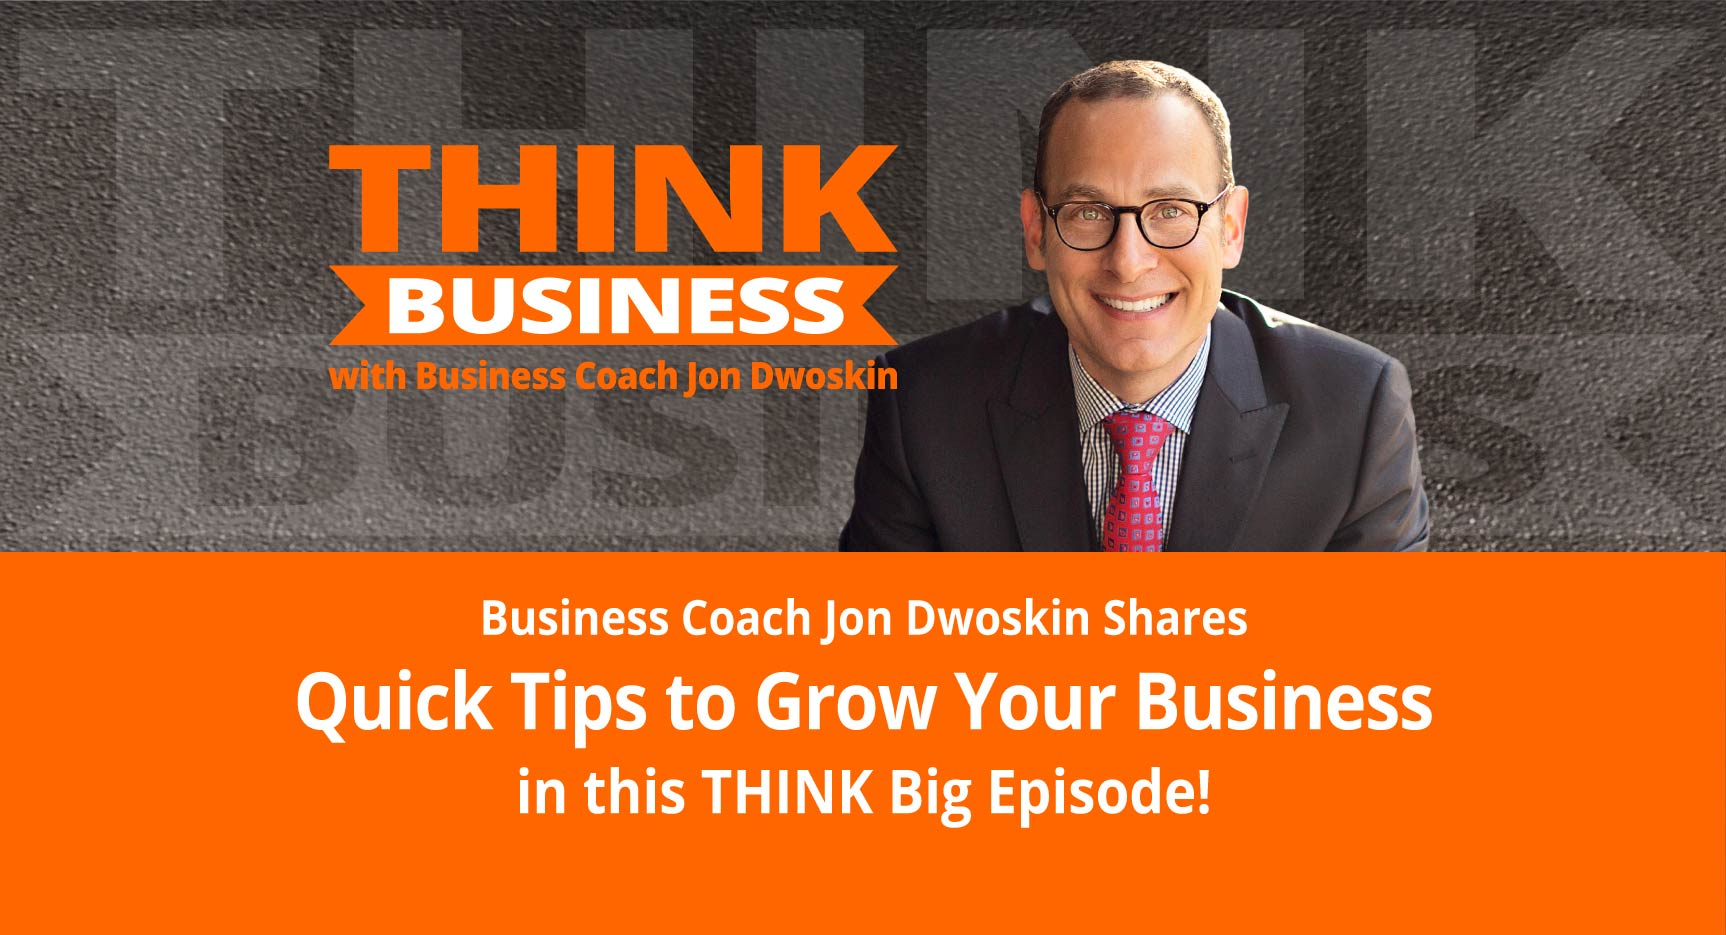 THINK Business Podcast: Today's Quick Tip